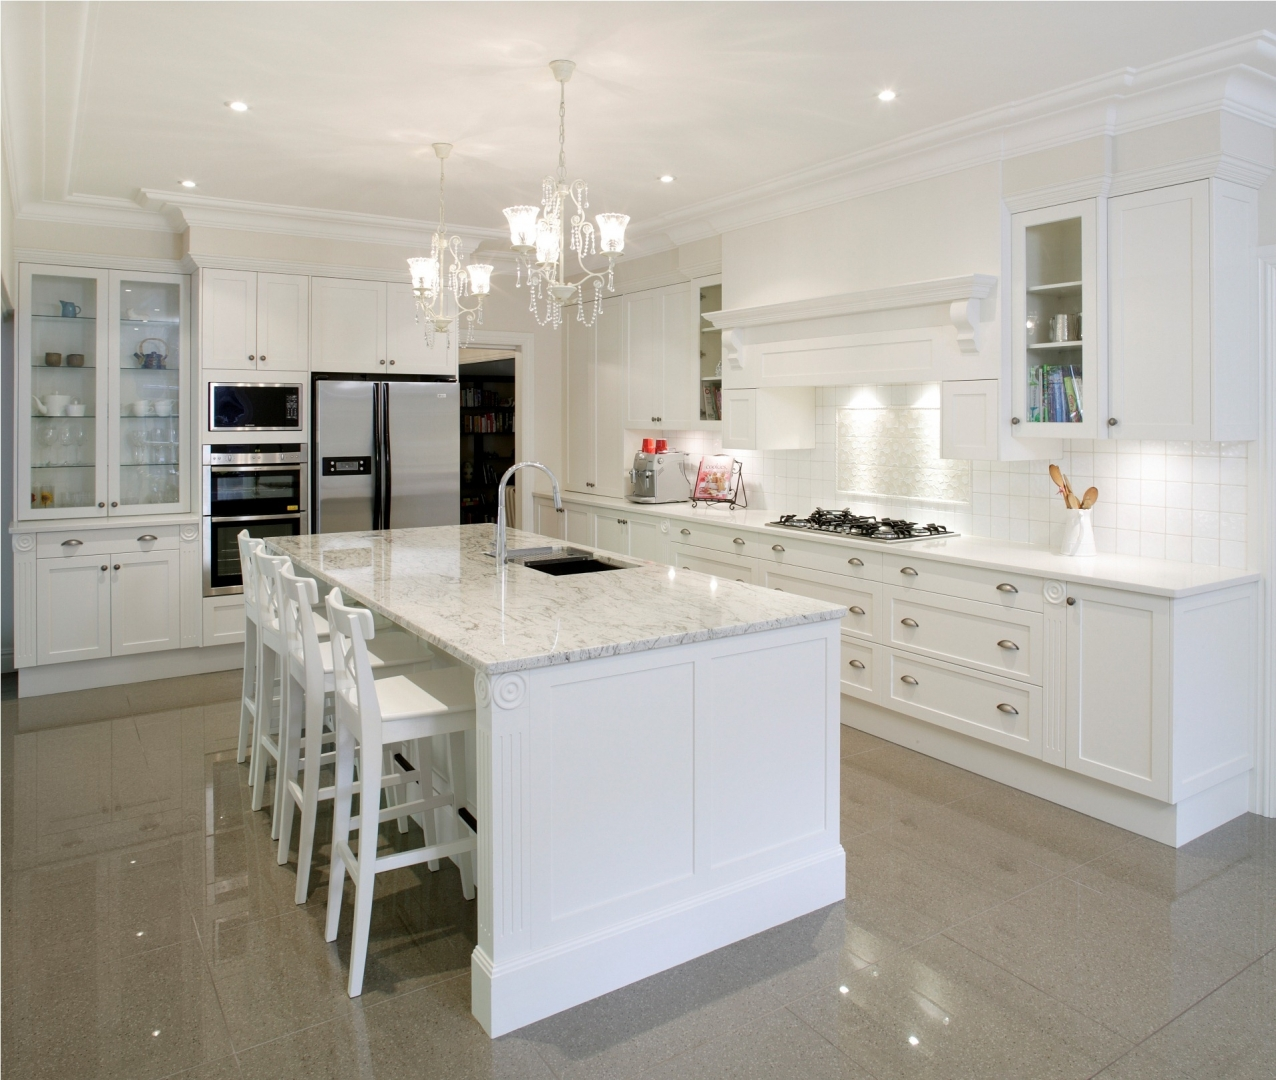 White Kitchens all white kitchens: is this trend here to stay? - modernize